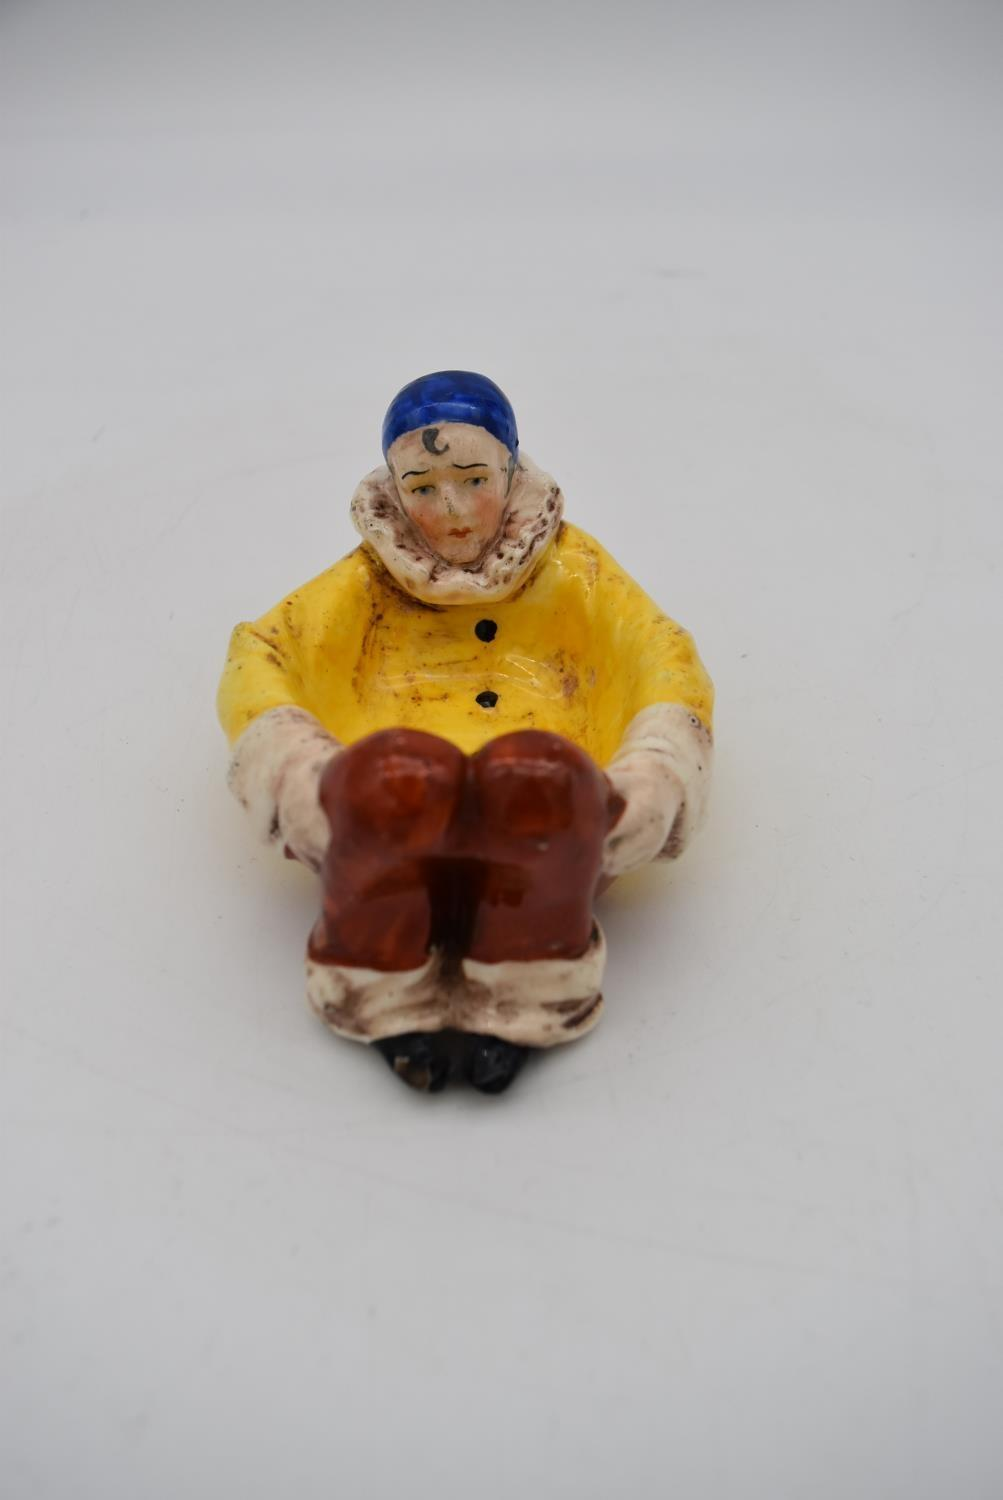 Two antique hand painted porcelain lying figures, one male clown and a female clown, used as dishes. - Image 4 of 9